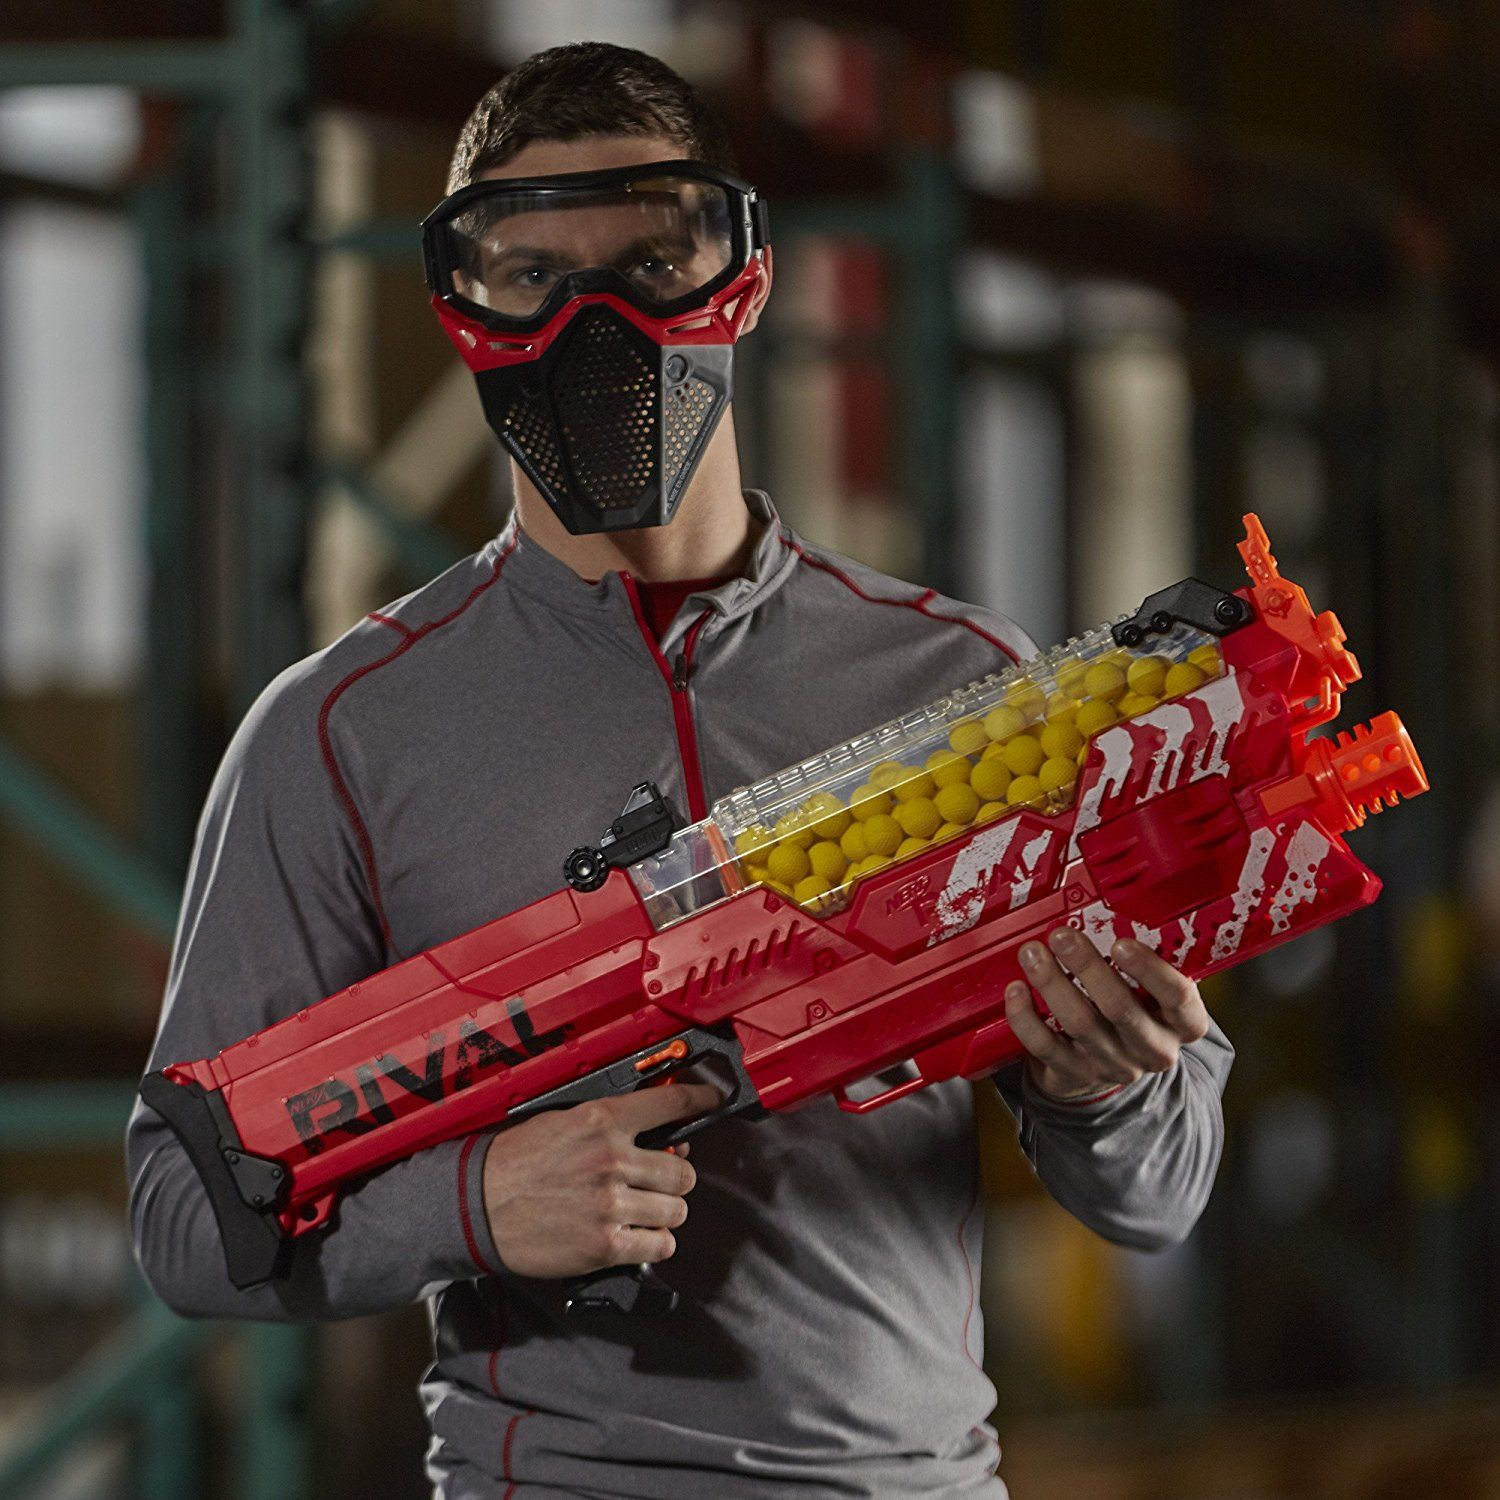 Nerf Rival Nemesis - The hockey mask is a bit much http://www